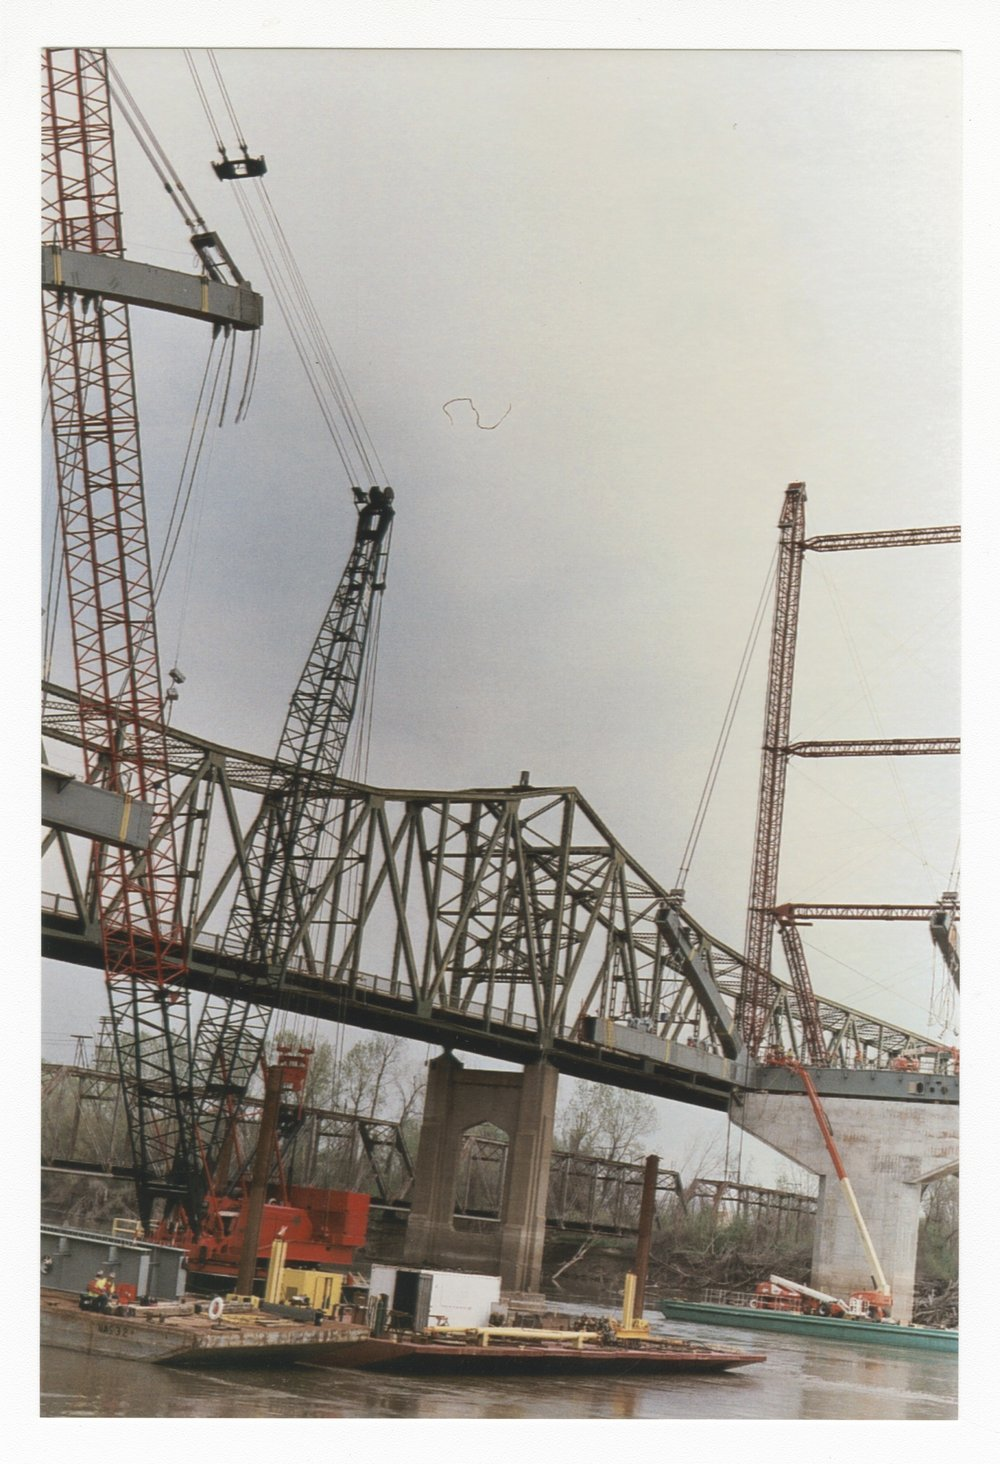 Construction on the Amelia Earhart Memorial bridge at Atchison, Kansas - 4